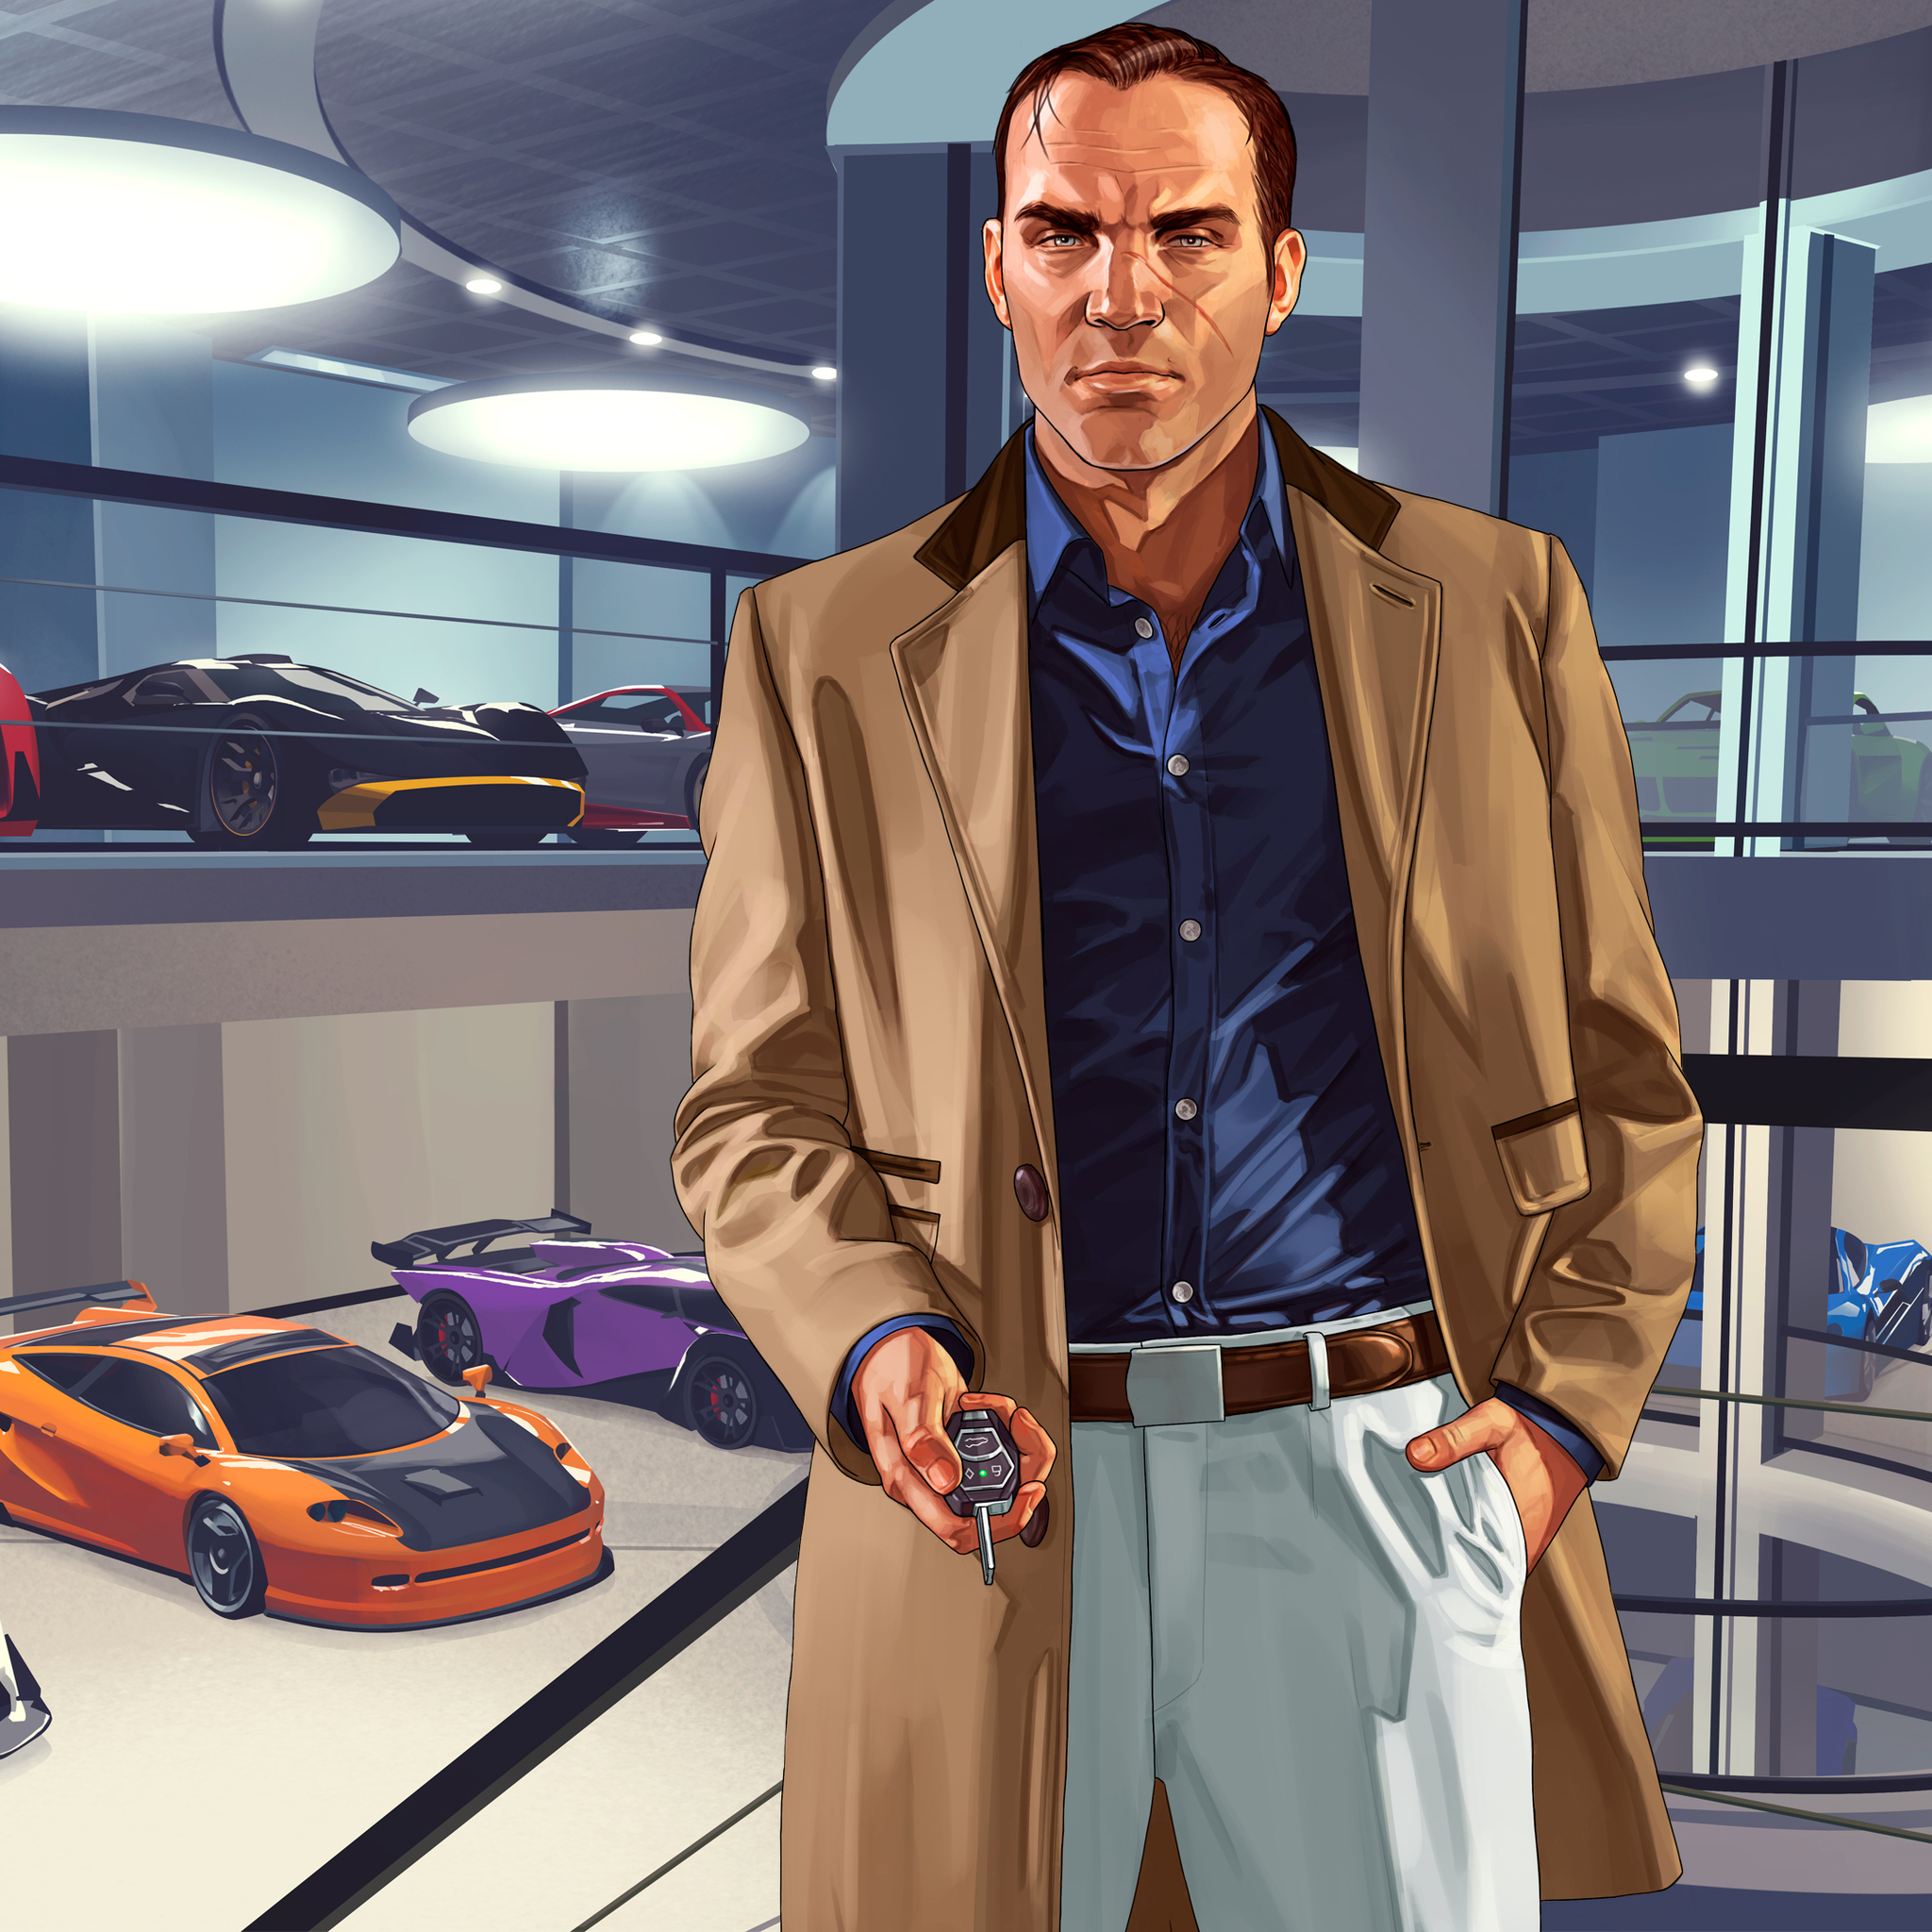 2048x2048 Gta V Import Export Dlc 4k Ipad Air HD 4k